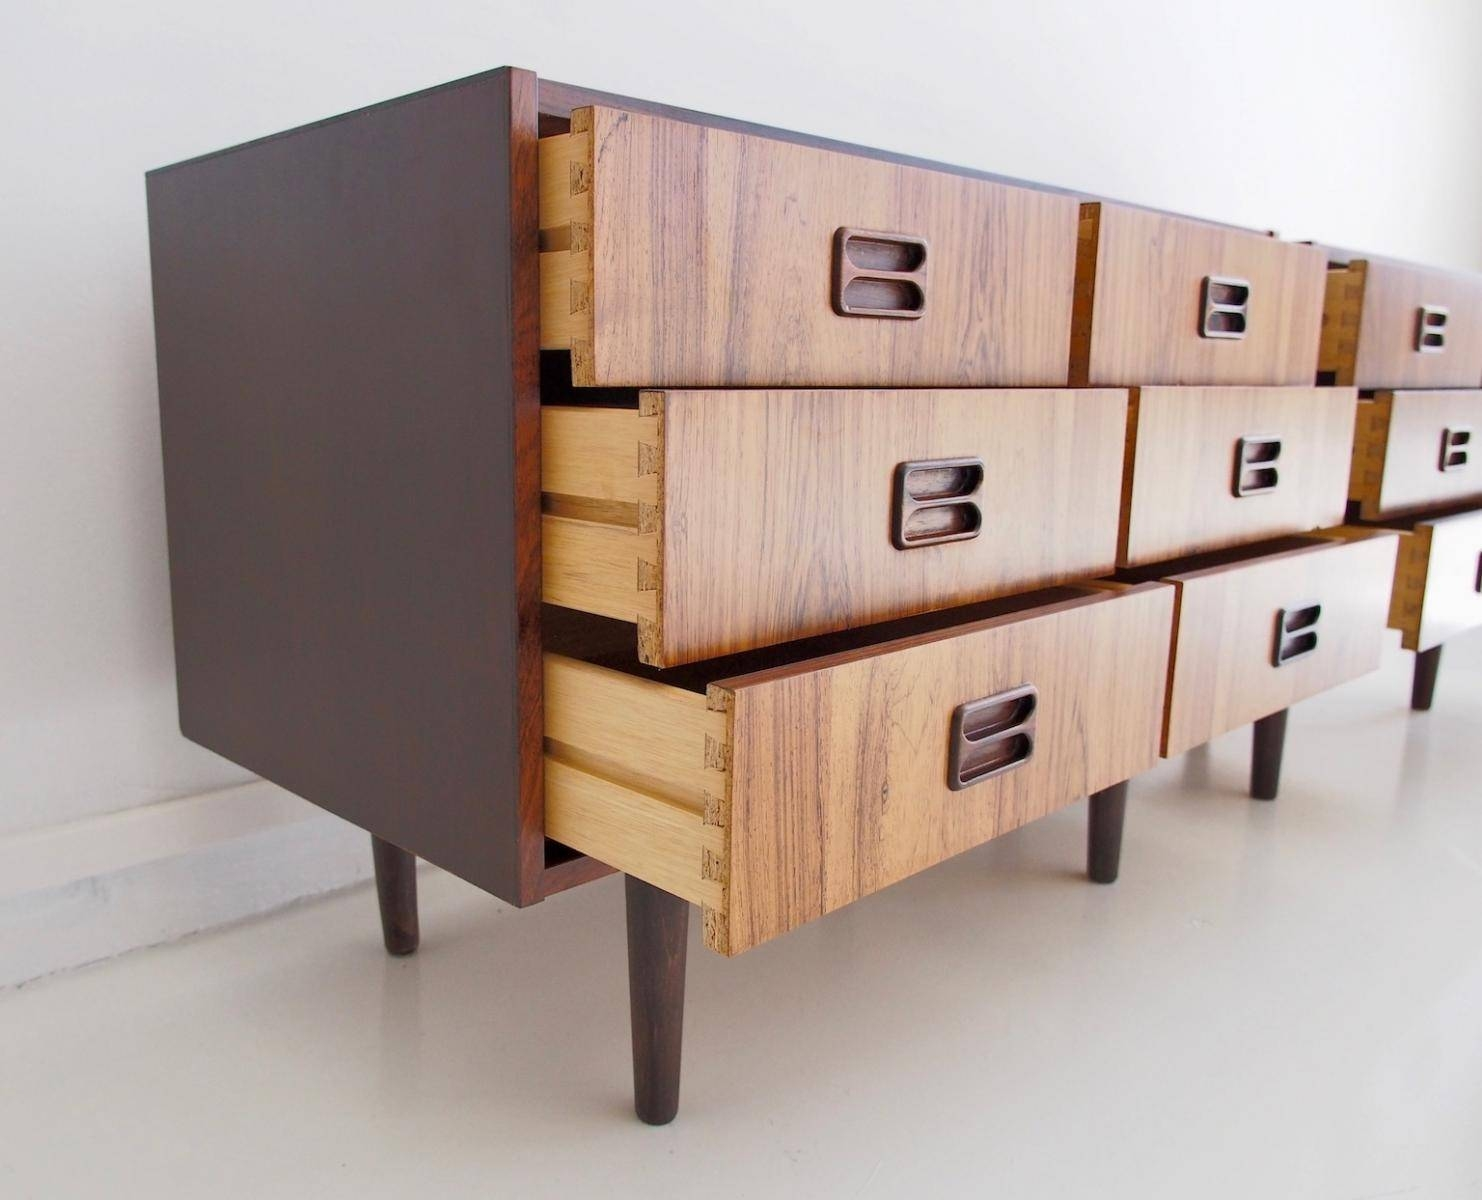 Danish Modern Sideboards With Six Drawers, 1960S, Set Of 2 For for Sideboards With Drawers (Image 5 of 15)